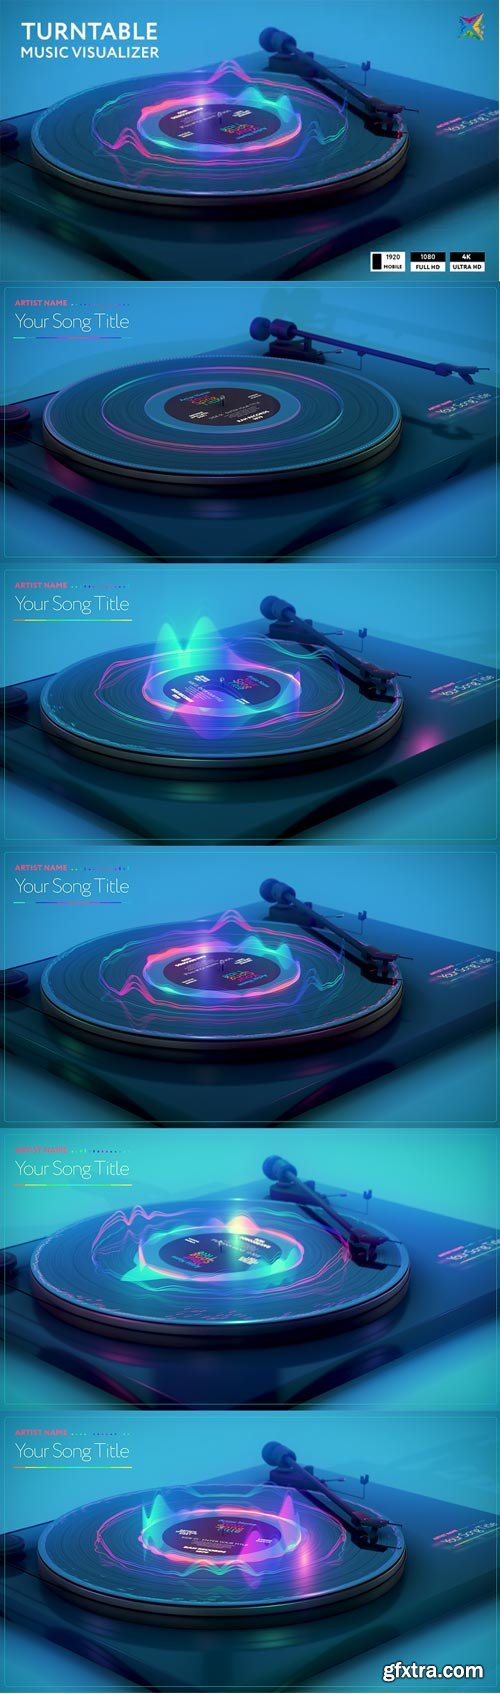 Videohive - Turntable Music Visualizer - 28772033